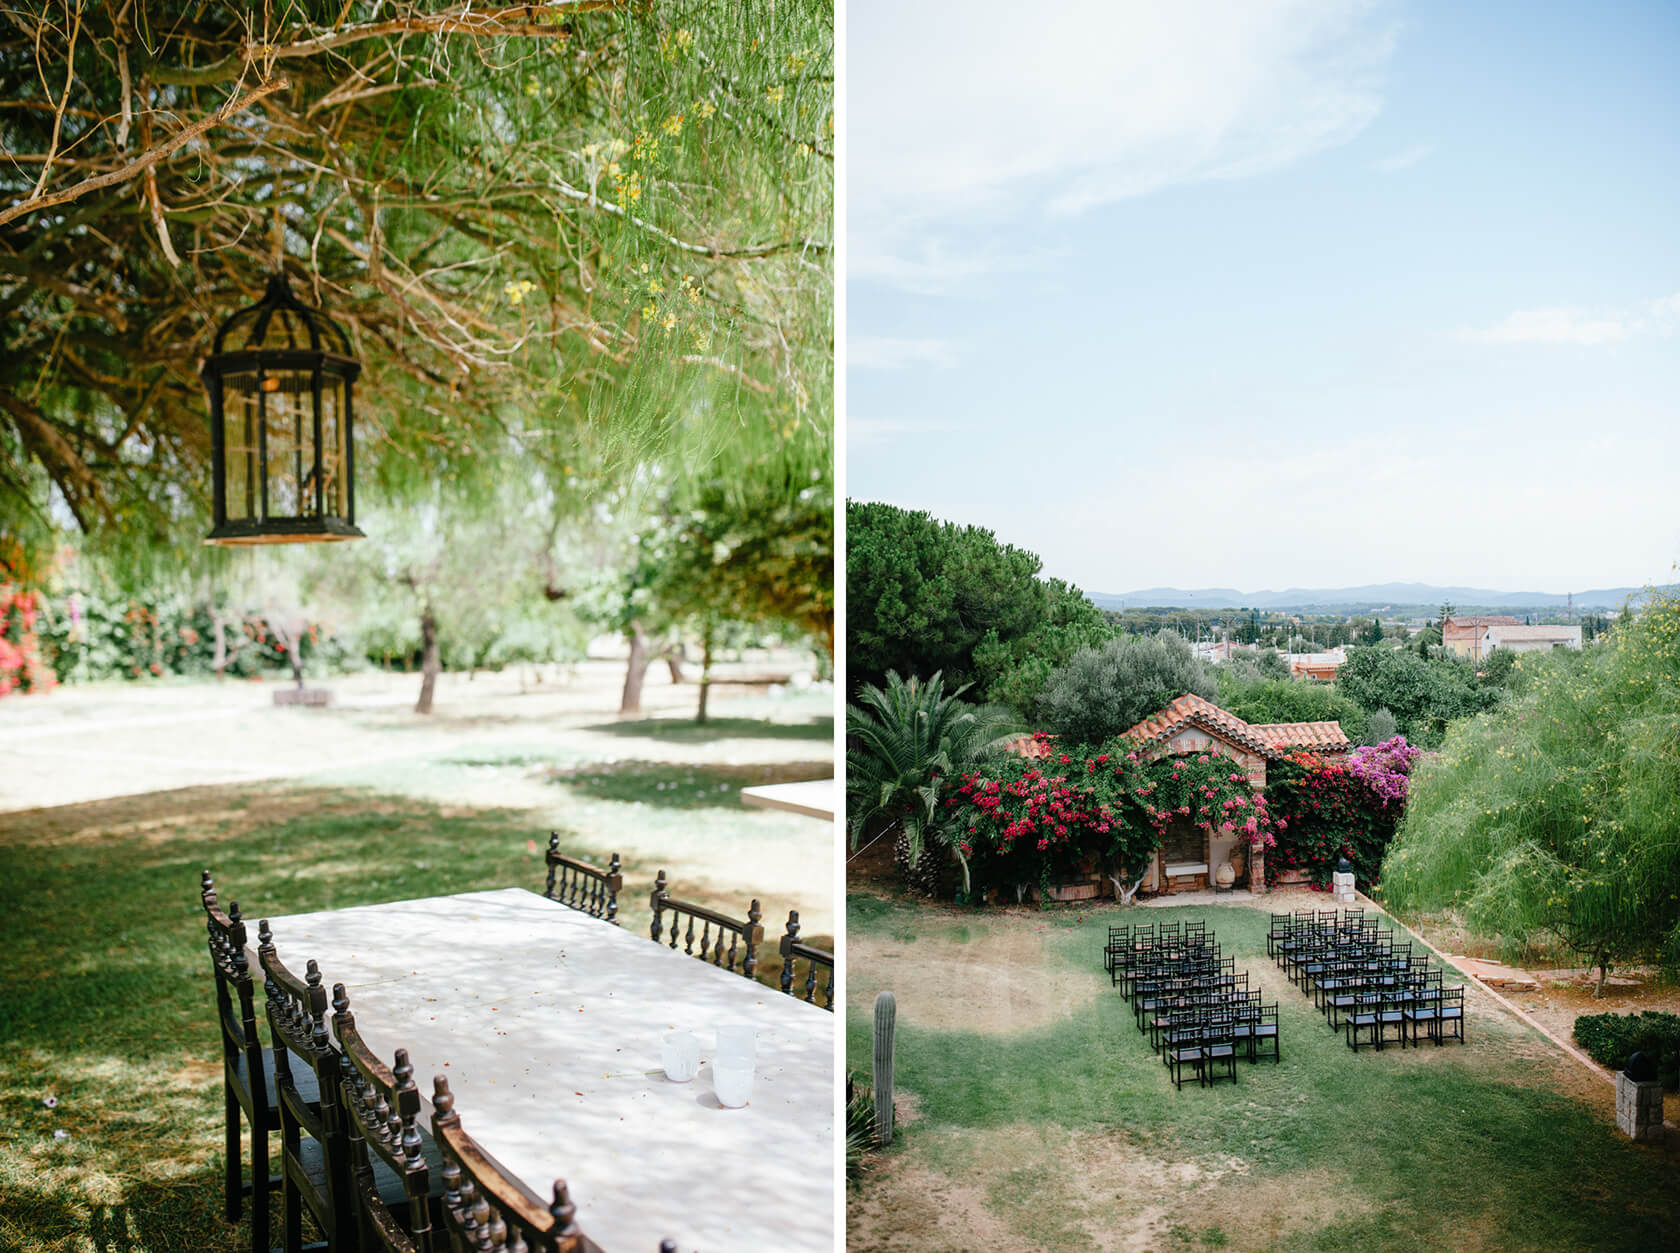 Gran Villa Rosa wedding venue in Spain